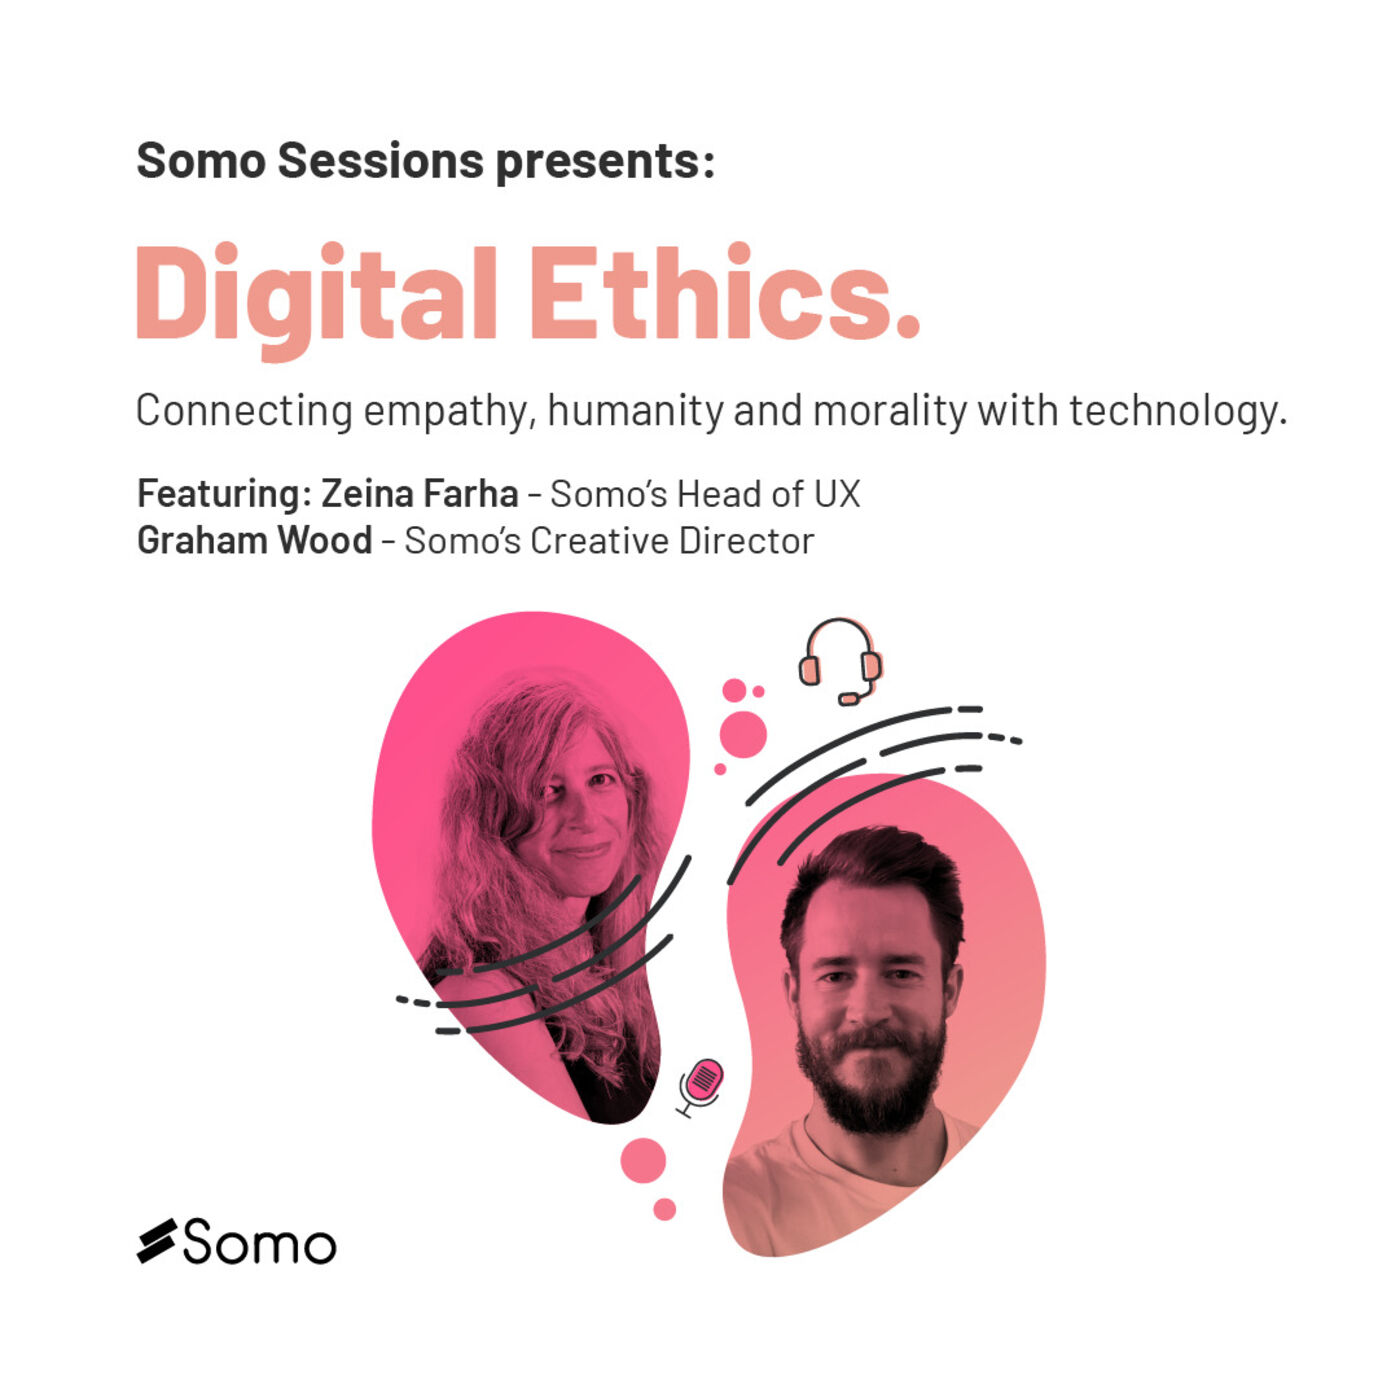 6. Digital Ethics: connecting empathy, humanity and morality with technology